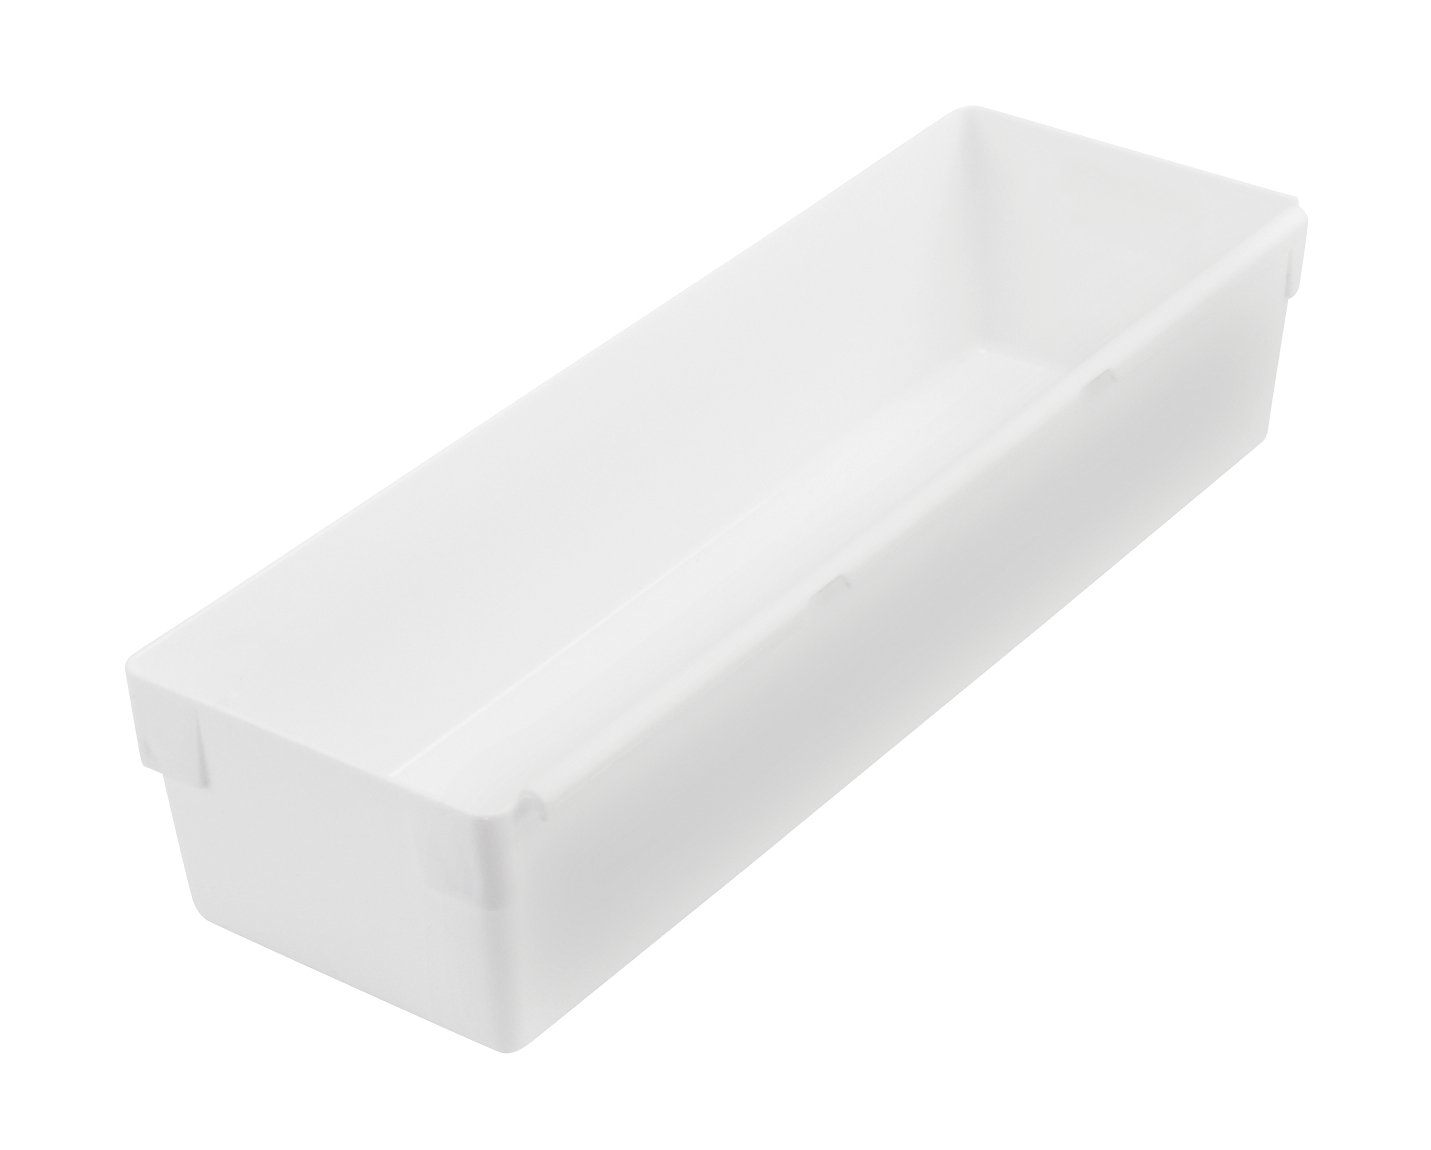 3 Inch x 9 Inch White Drawer Organizer